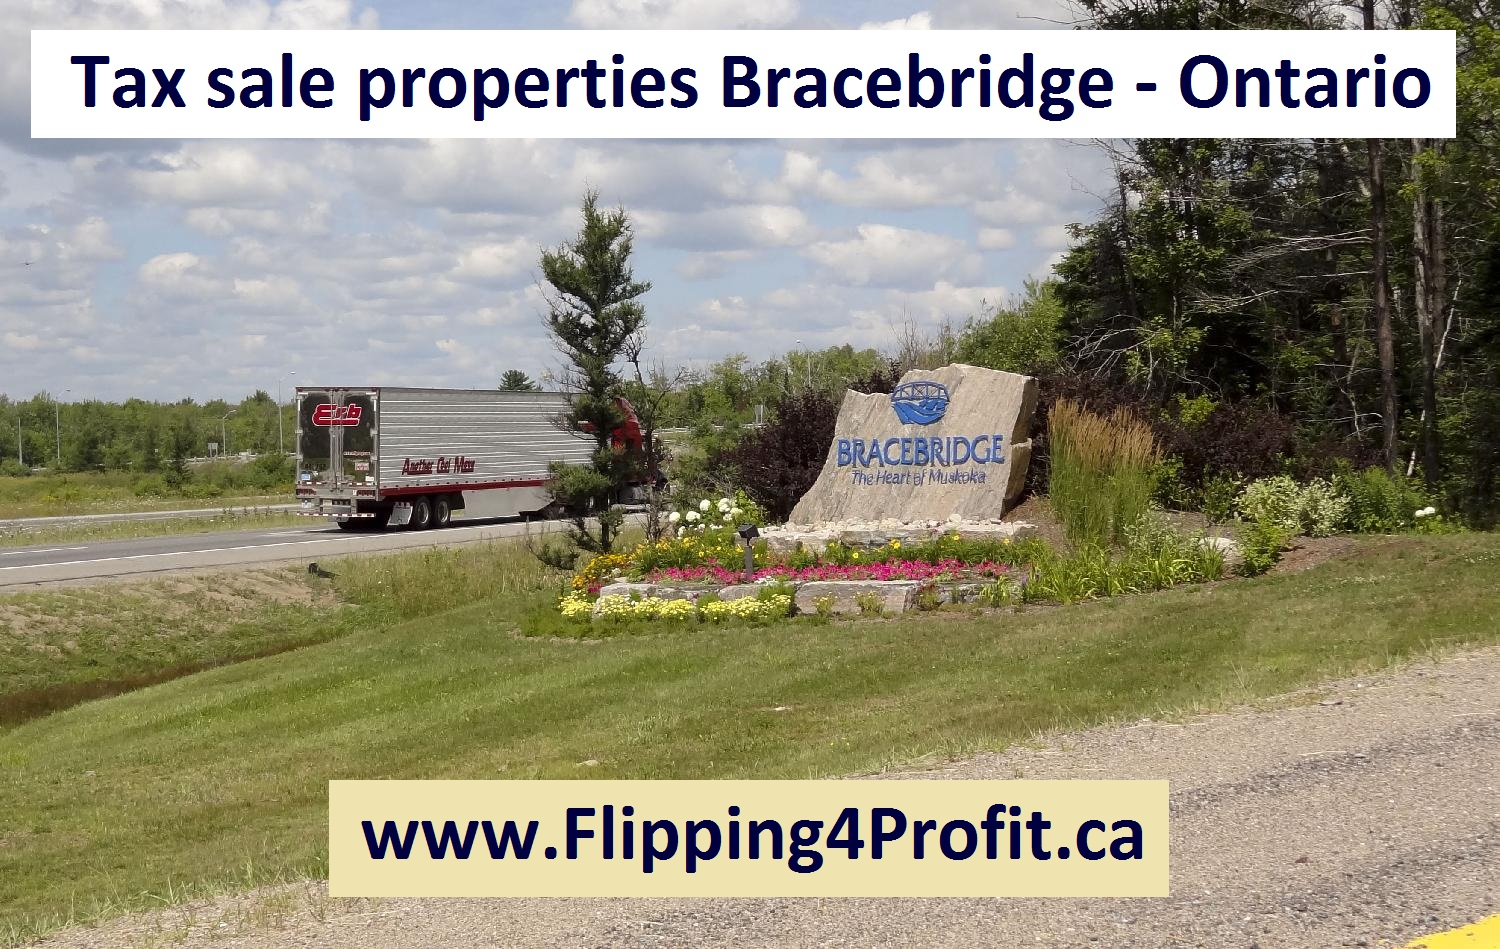 July 28, 2016 Tax sale properties Bracebridge - Ontario